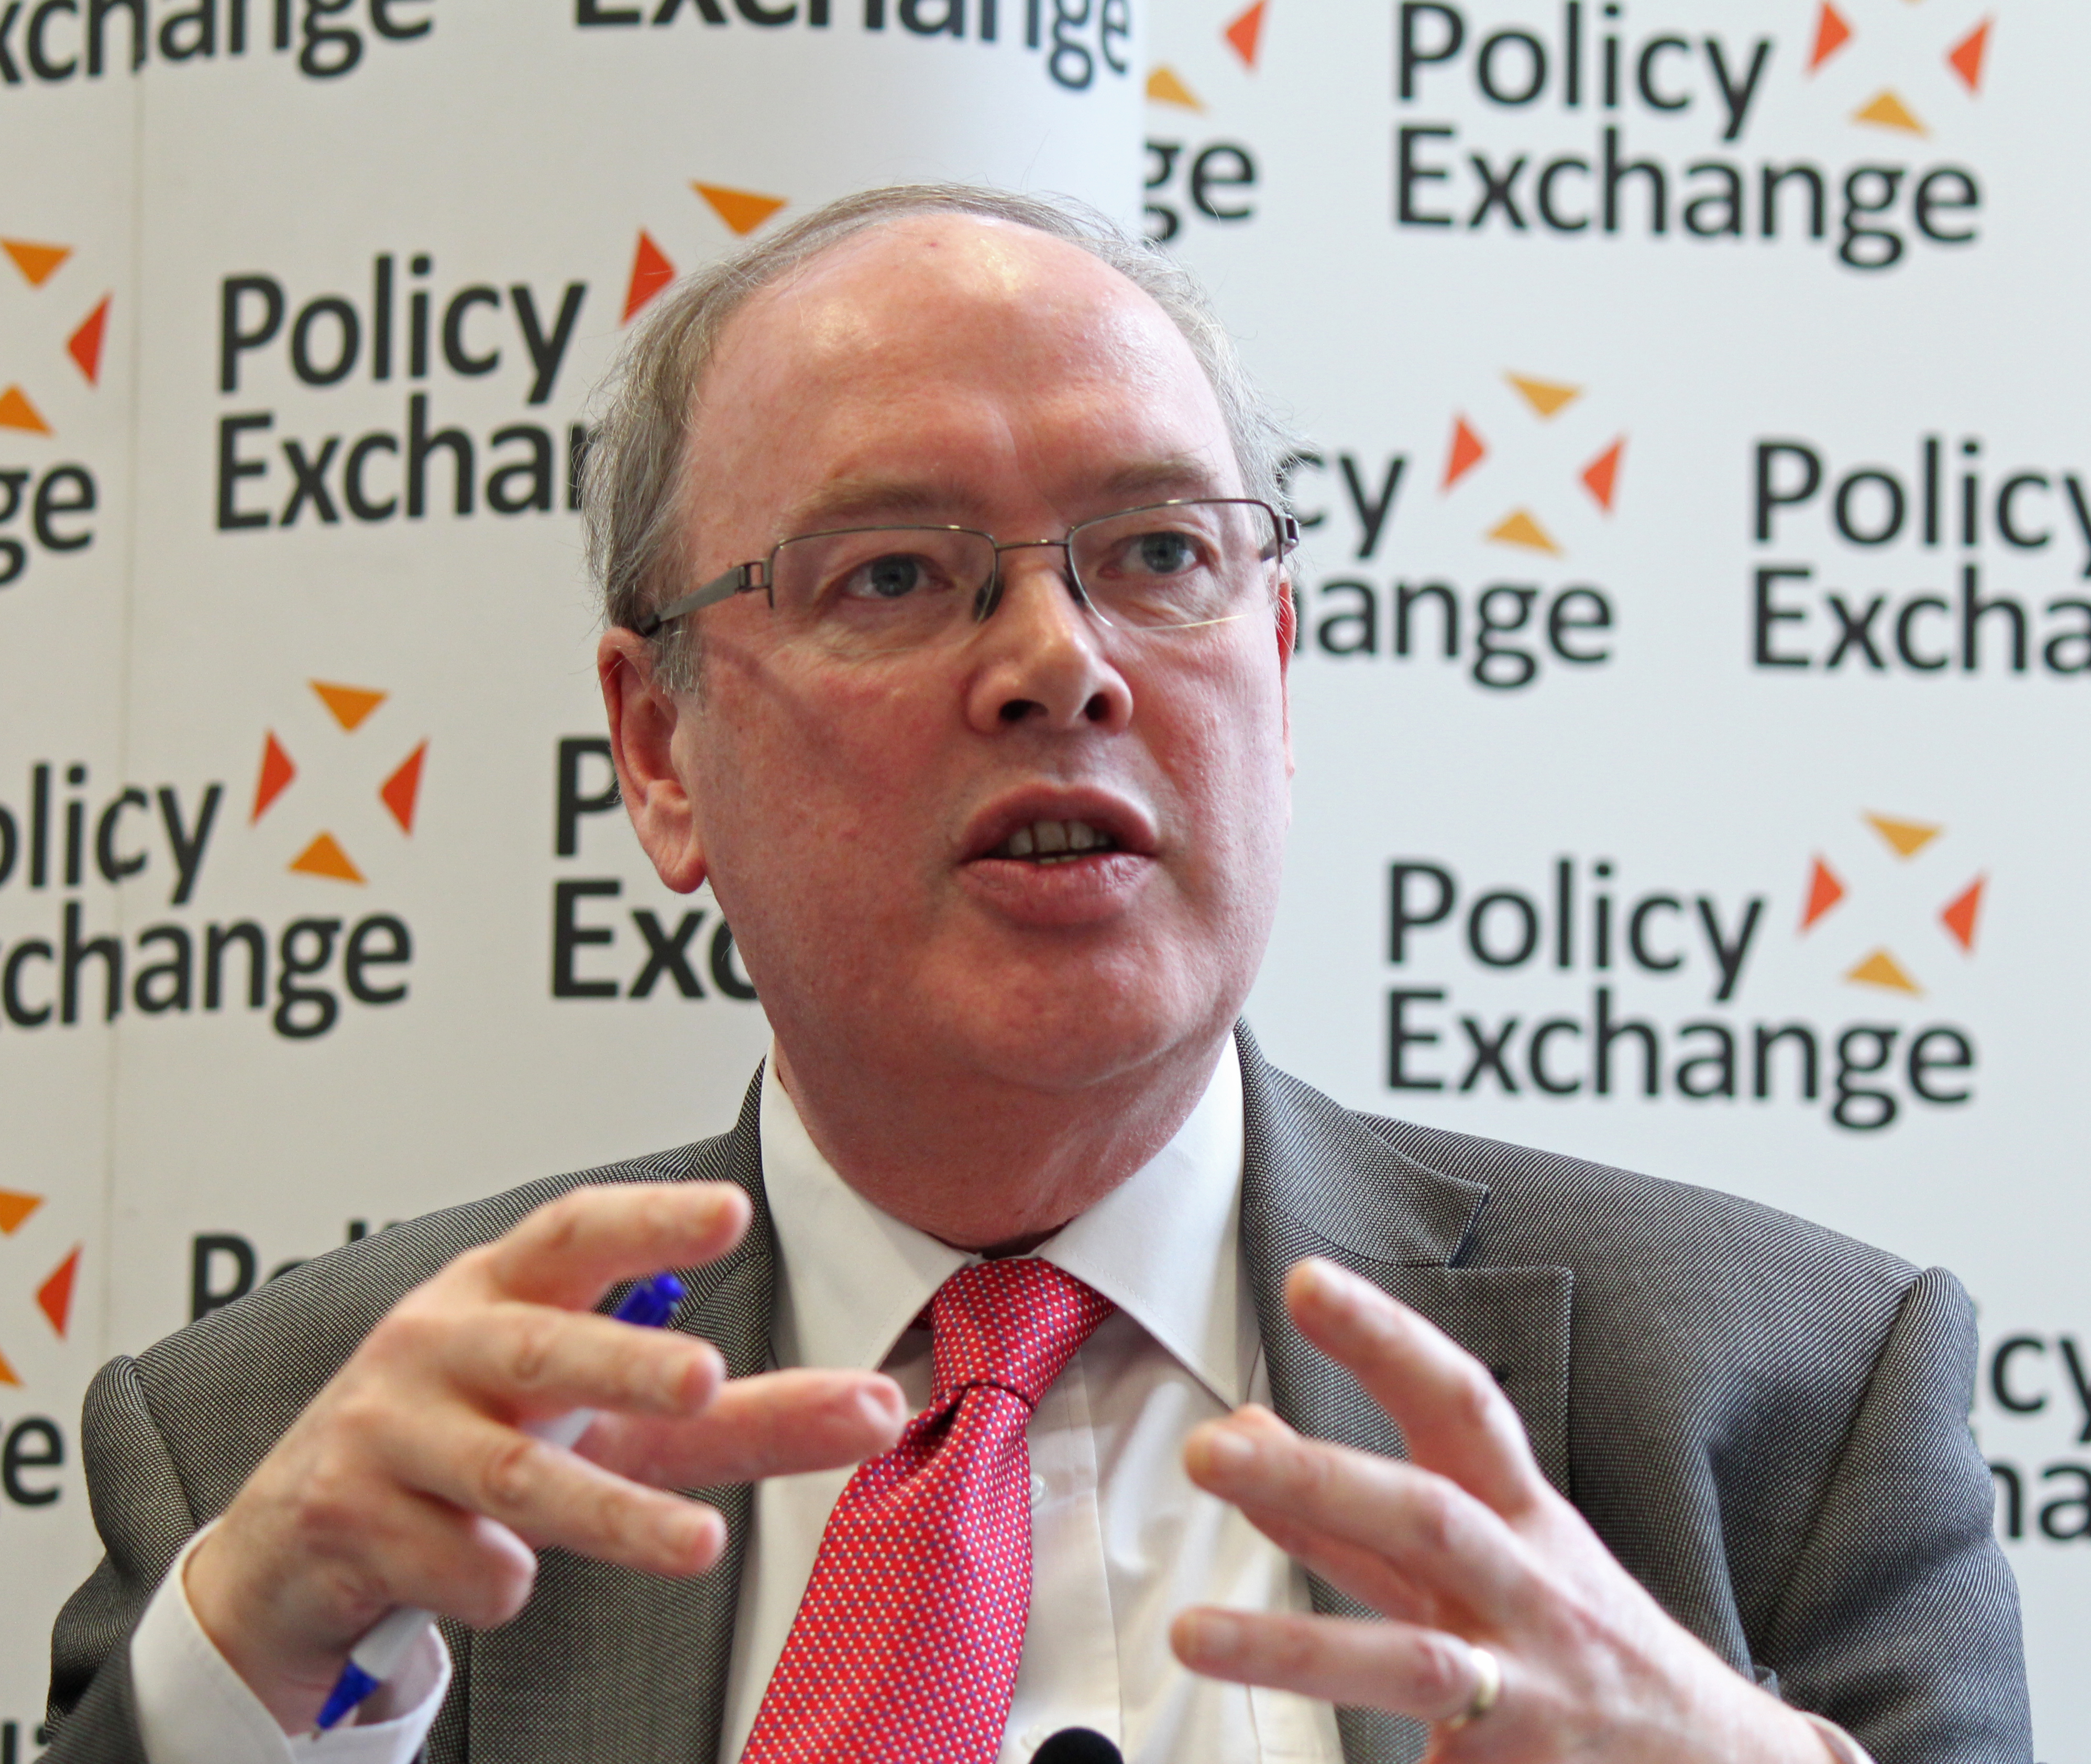 Dr_Andrew_Sentance_CBE_at_Policy_Exchang